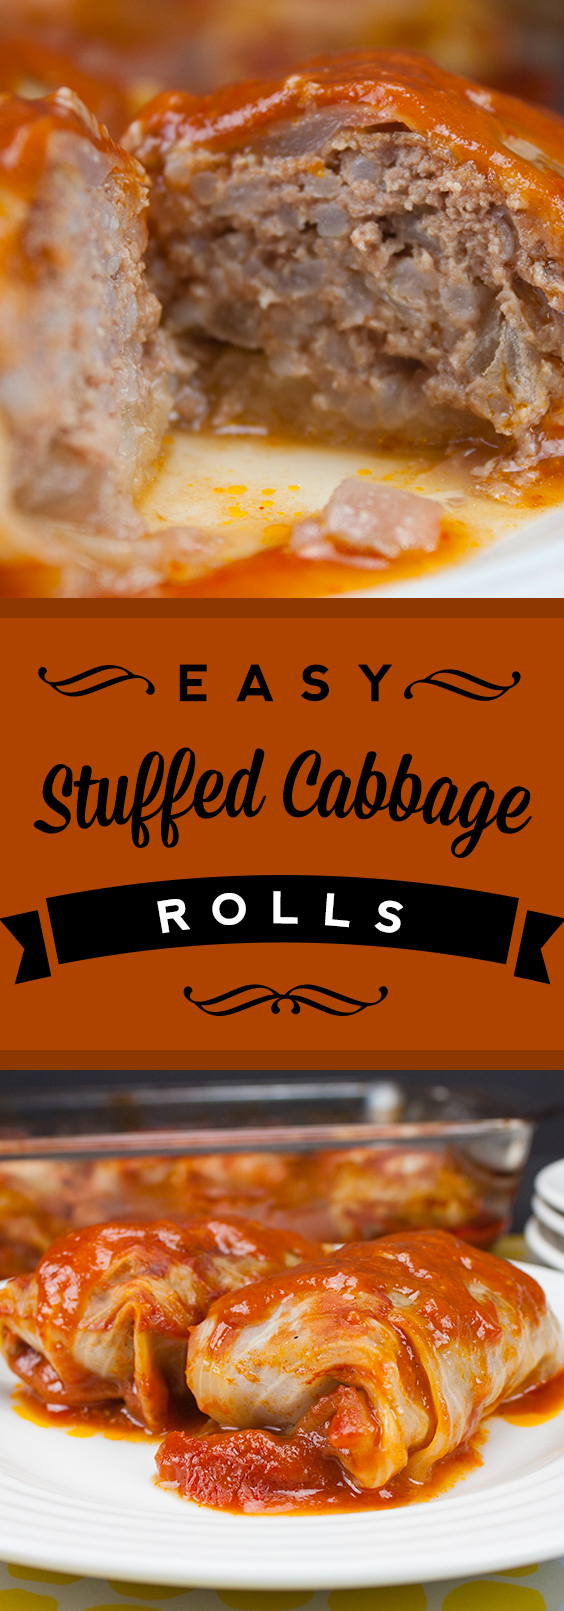 Easy Stuffed Cabbage Rolls - Tender leaves of cabbage stuffed with flavorful seasoned beef and rice, baked in a mouthwatering tomato sauce. This dish will change your mind about cabbage.